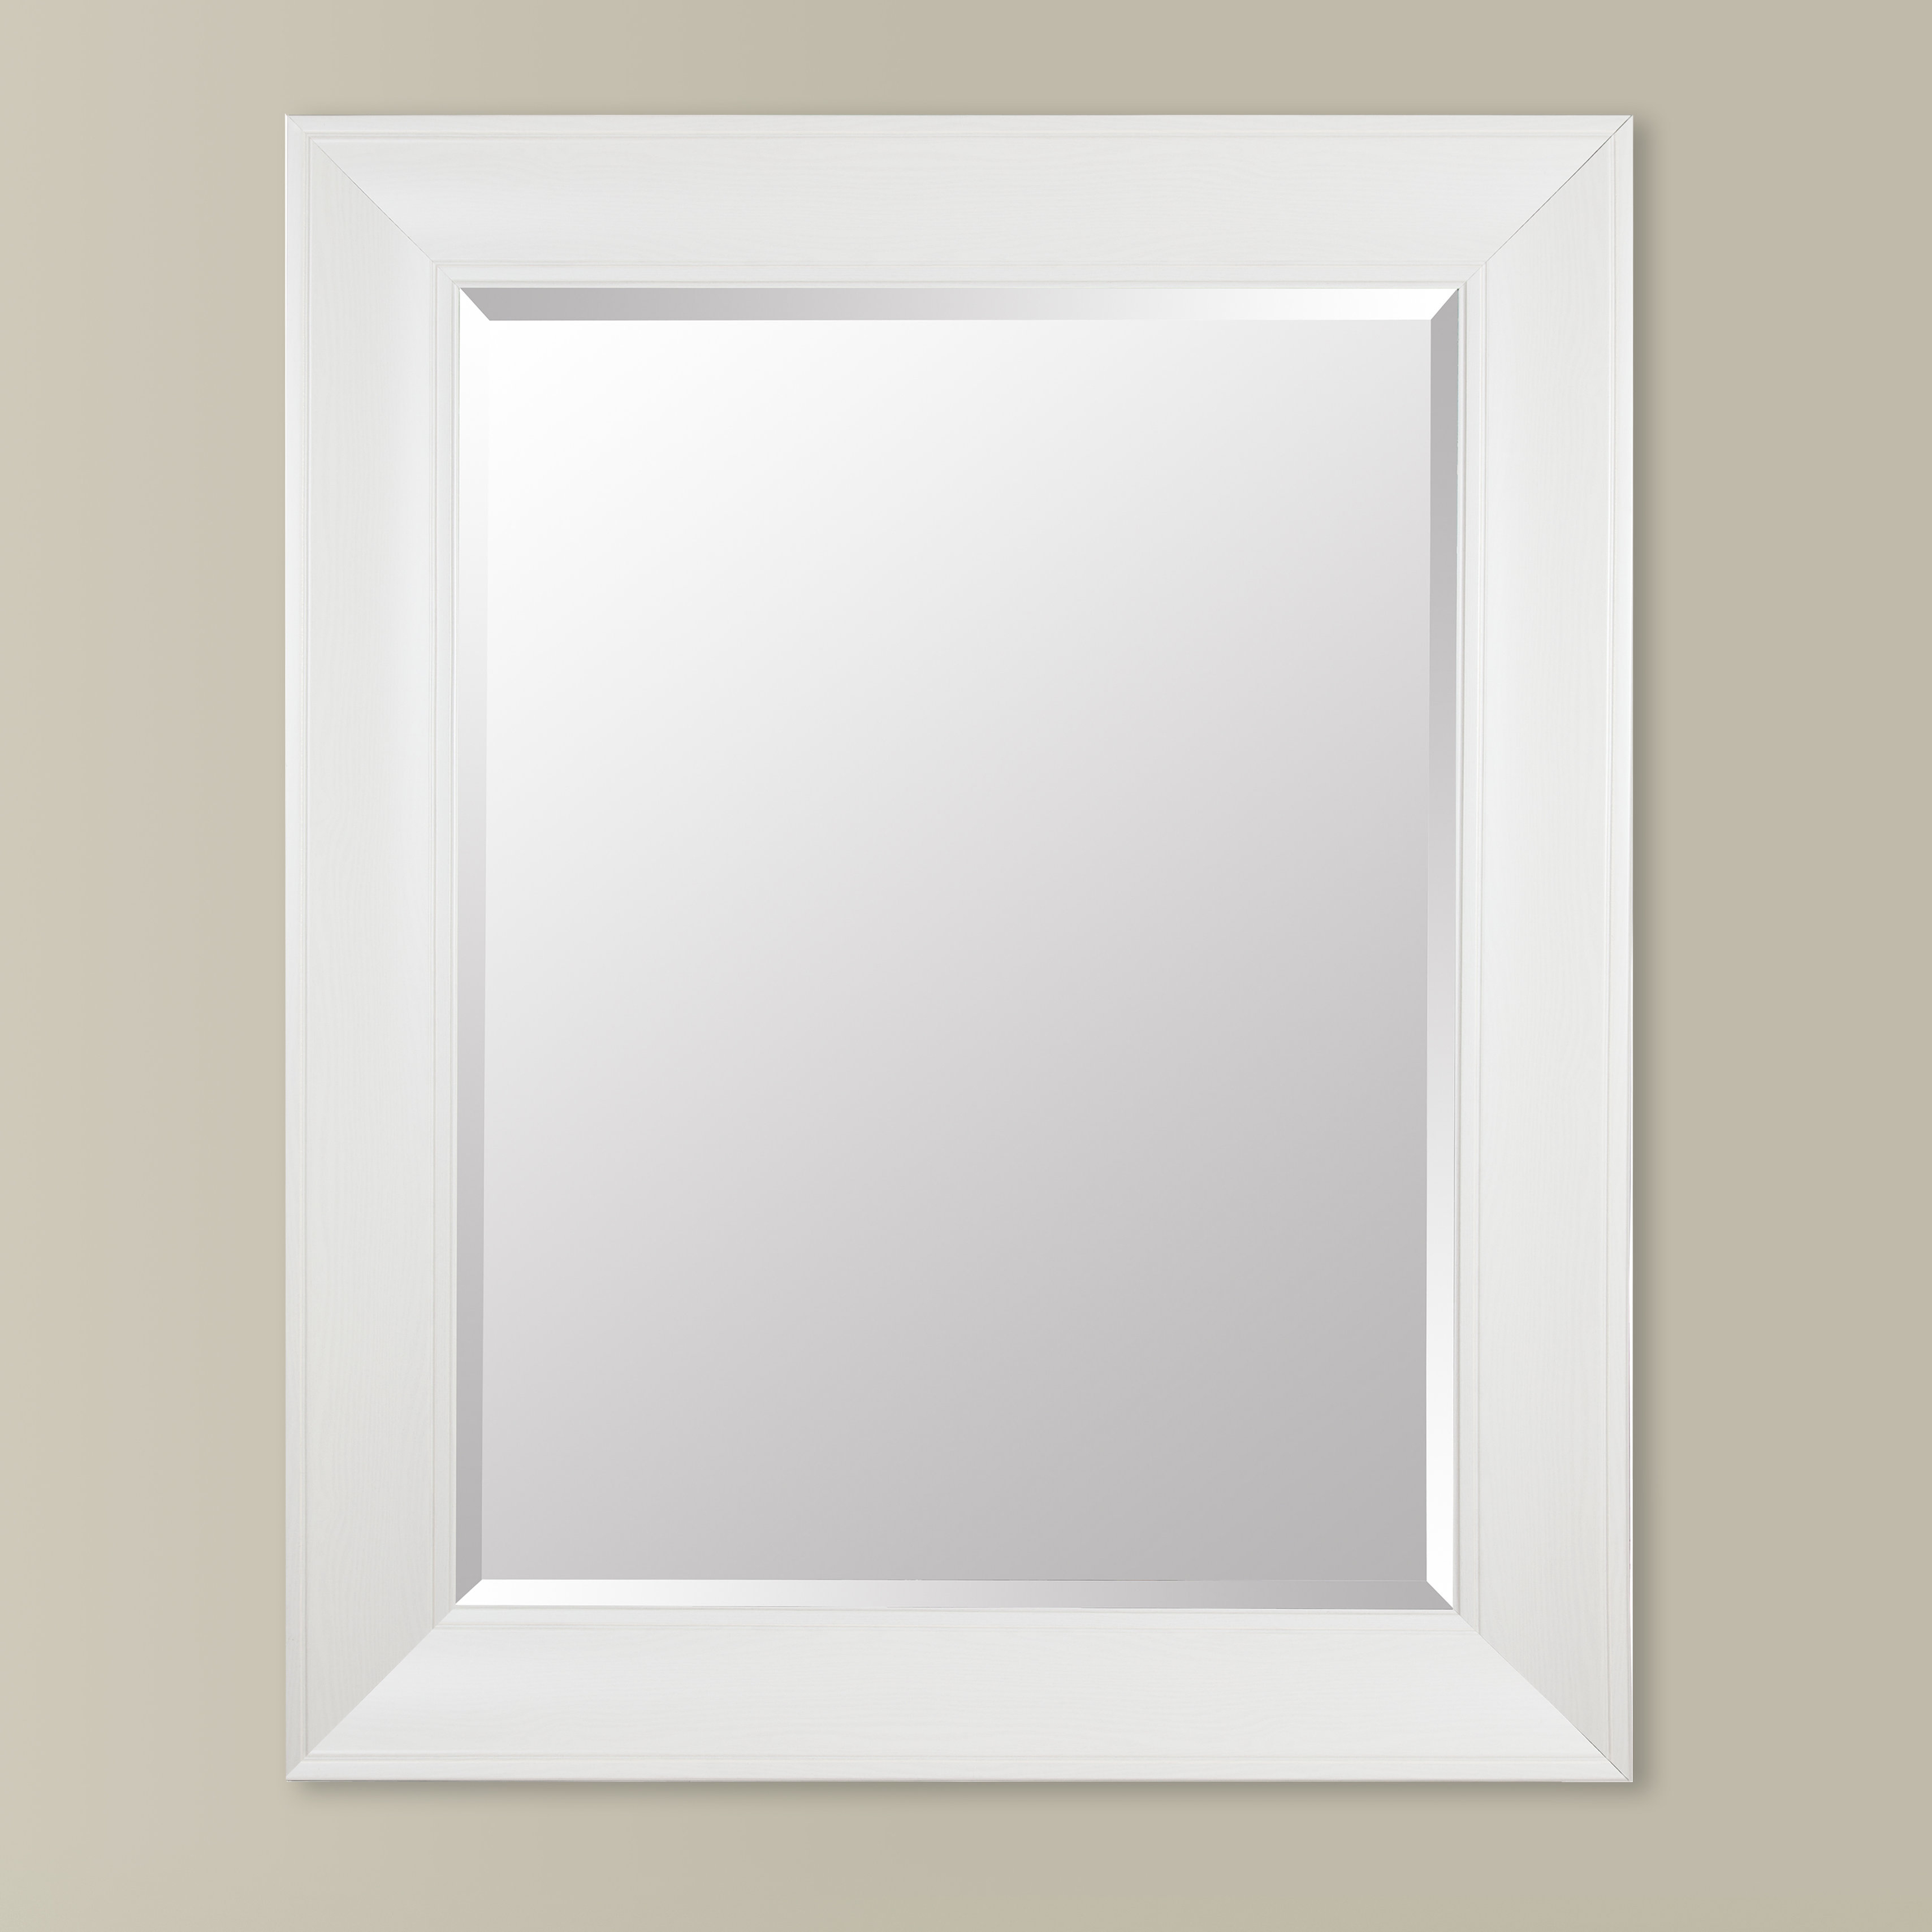 Gallery Solutions Beveled Wall Mirror For Traditional Square Glass Wall Mirrors (Image 5 of 20)